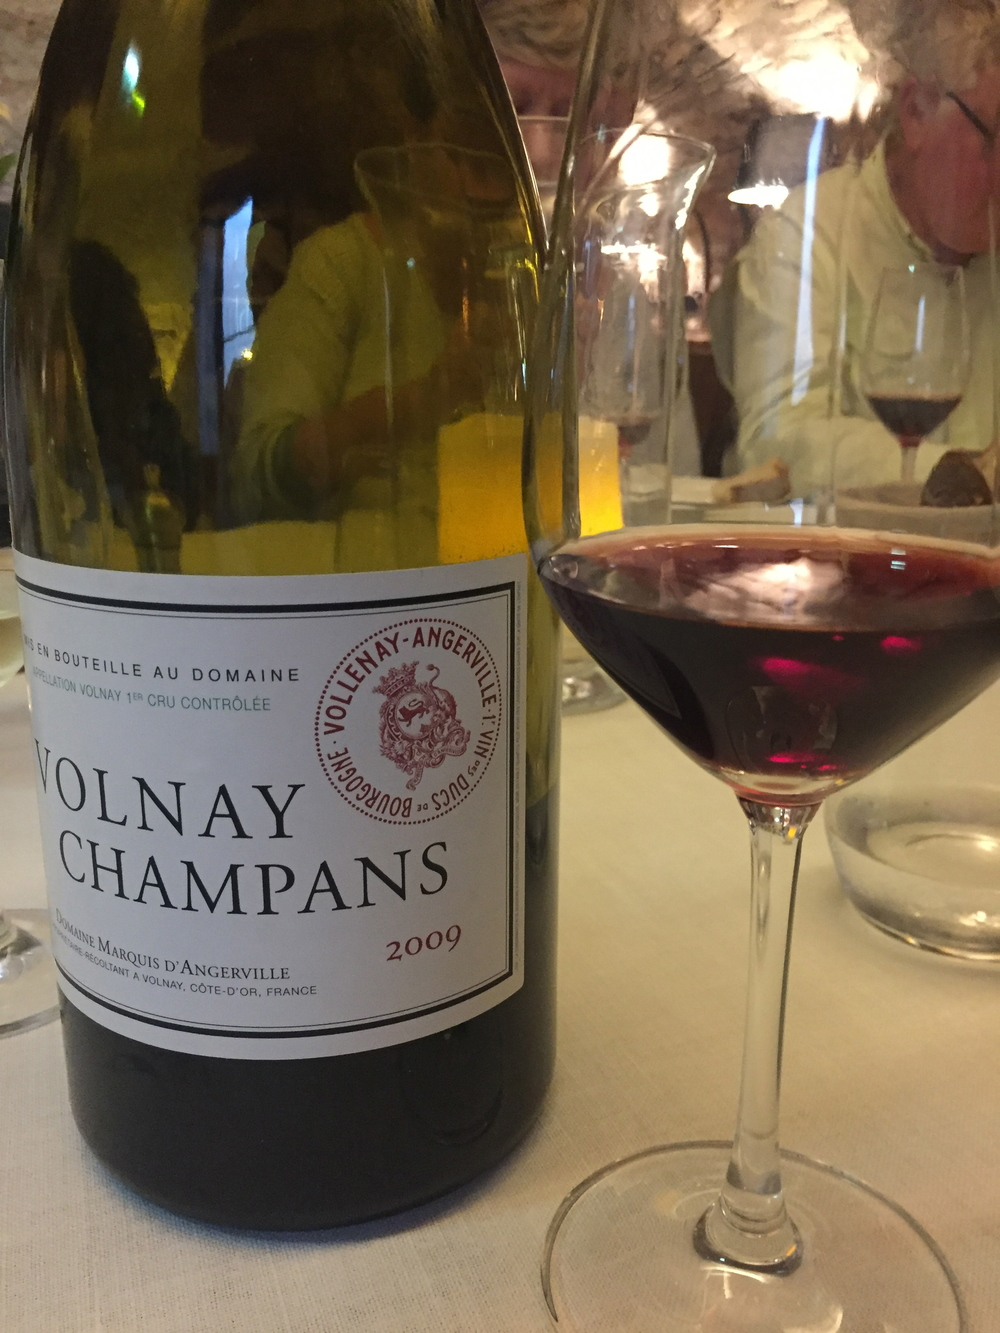 A very nice Magnum of  '09 Volnay Champans from d'Angerville